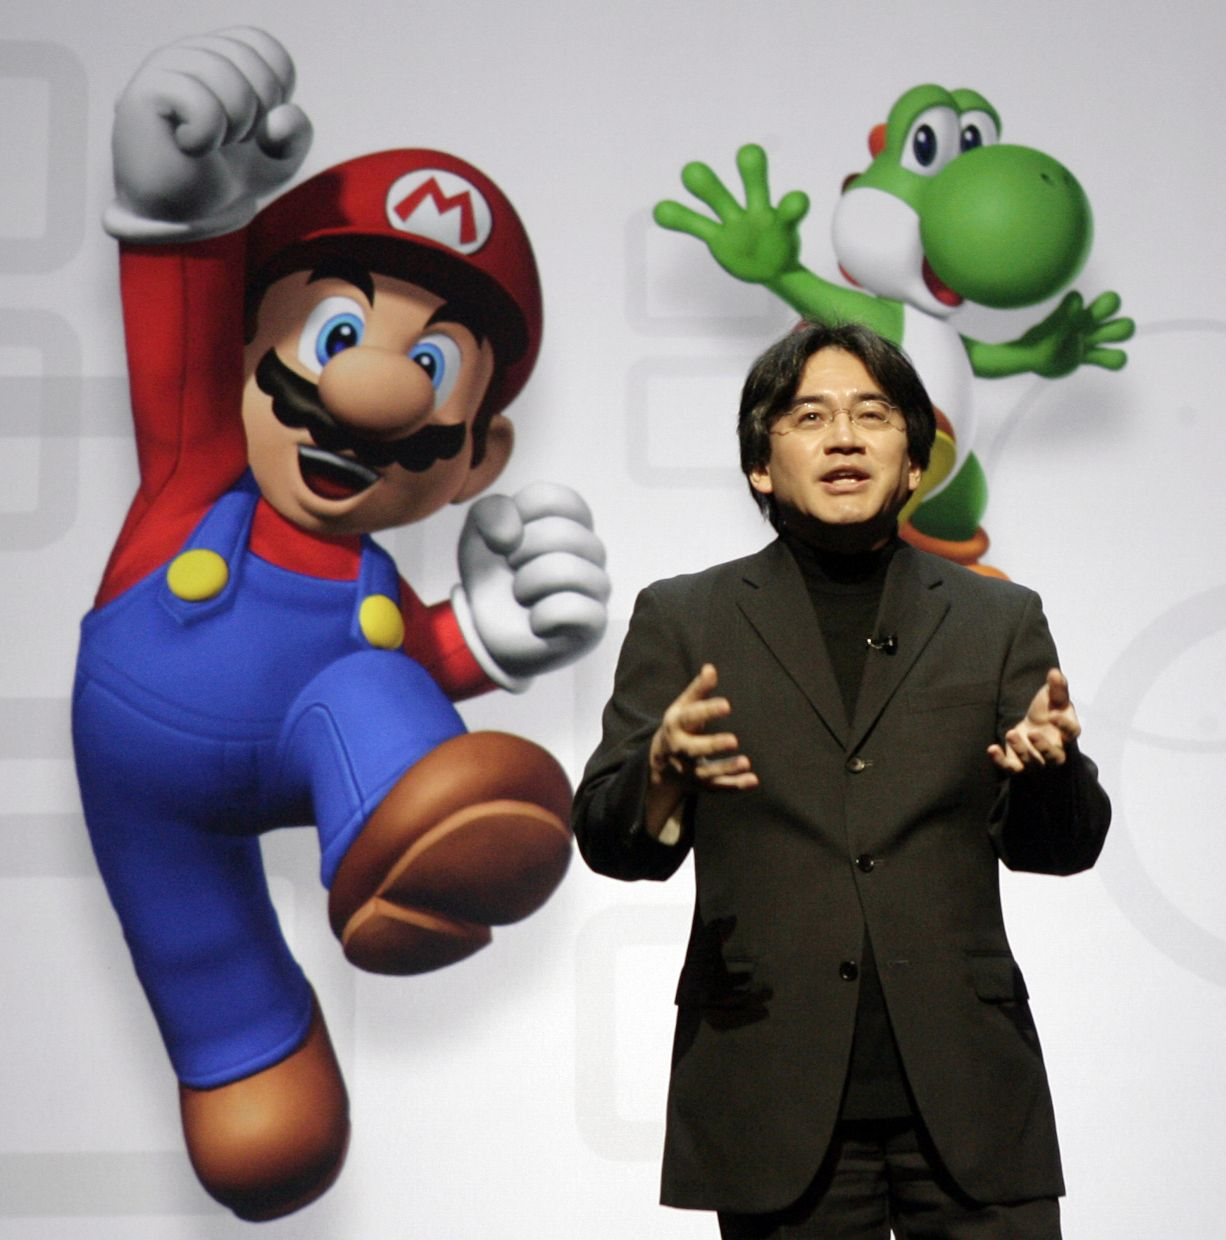 Throughout the book, Iwata outlines his vision for Nintendo Co, which was to offer entertainment that everyone in the family could enjoy, regardless of age, gender and game playing skills. — AP